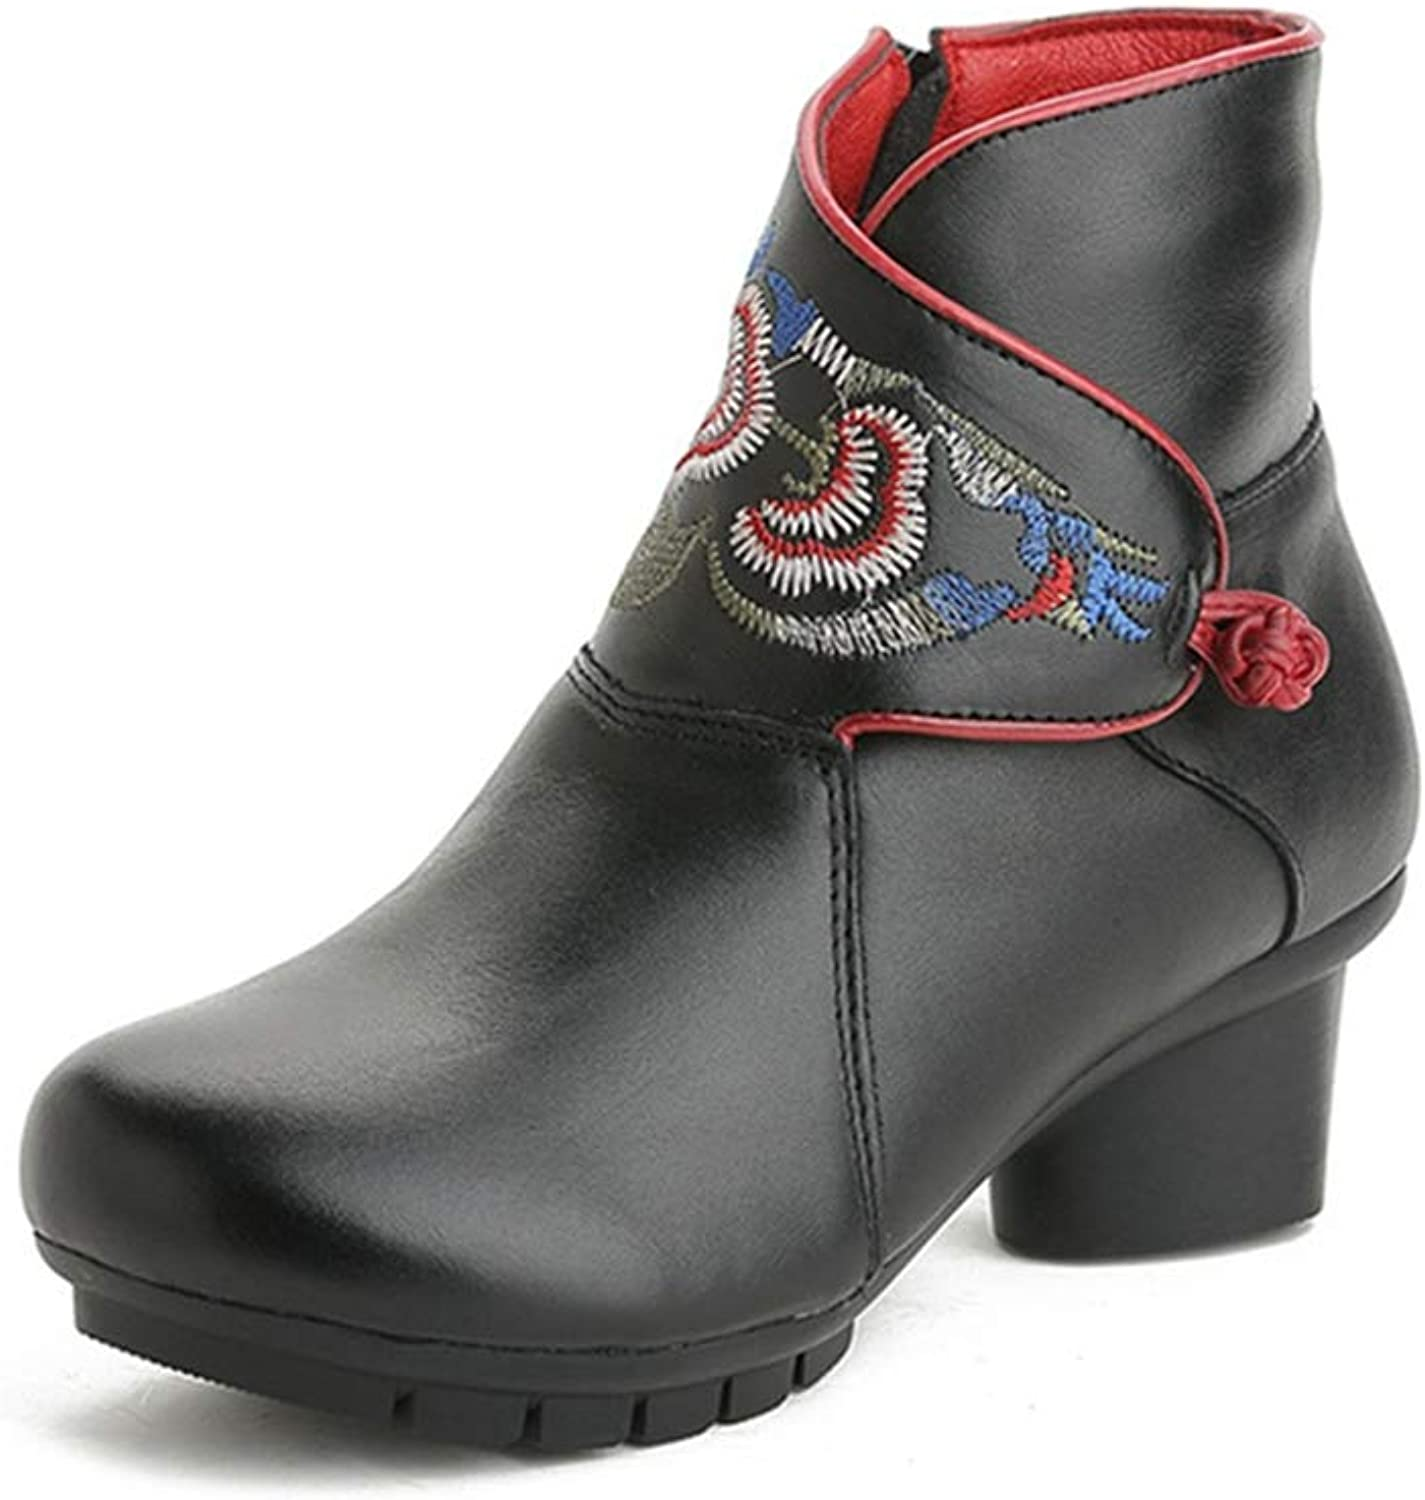 GIY Women's Retro Embroidered Ankle Boots Leather Round Toe Zipper Low Heel Bootie Winter Dress Short Boot